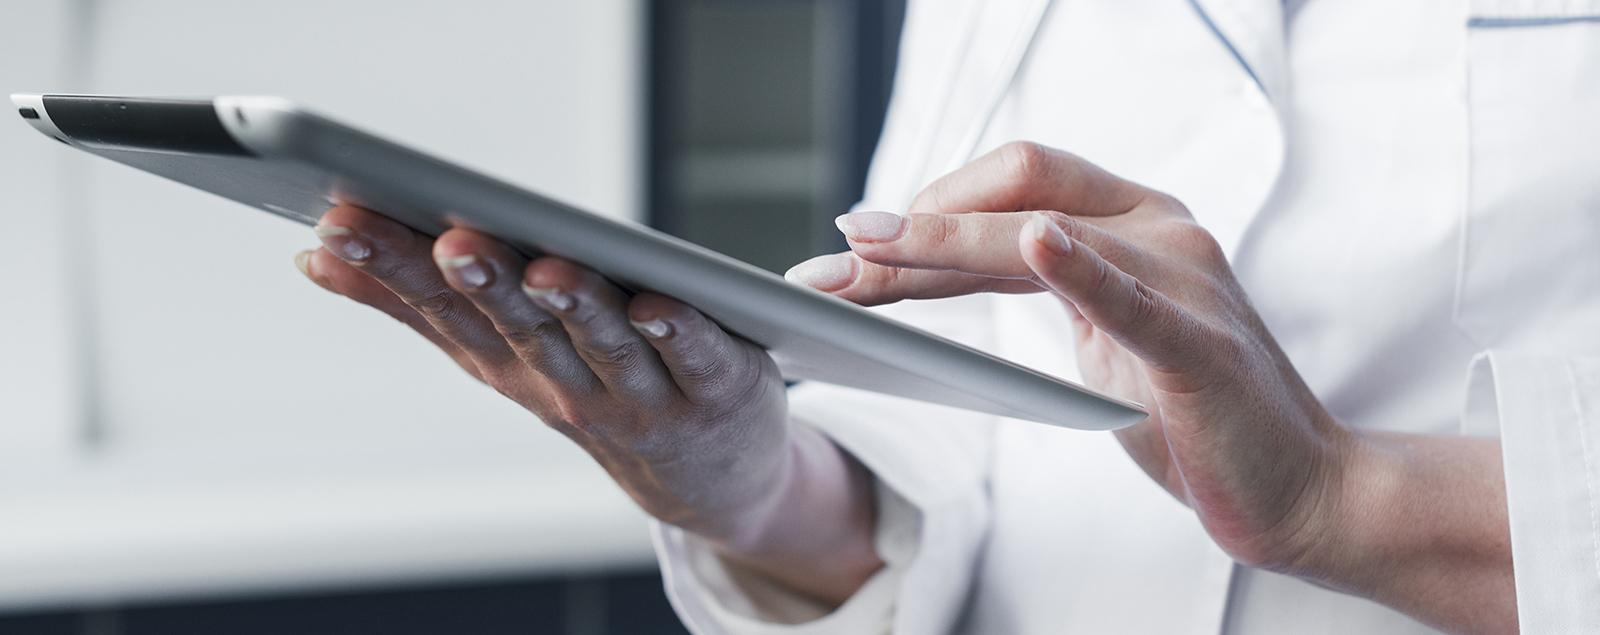 Person in lab coat working on an iPad.